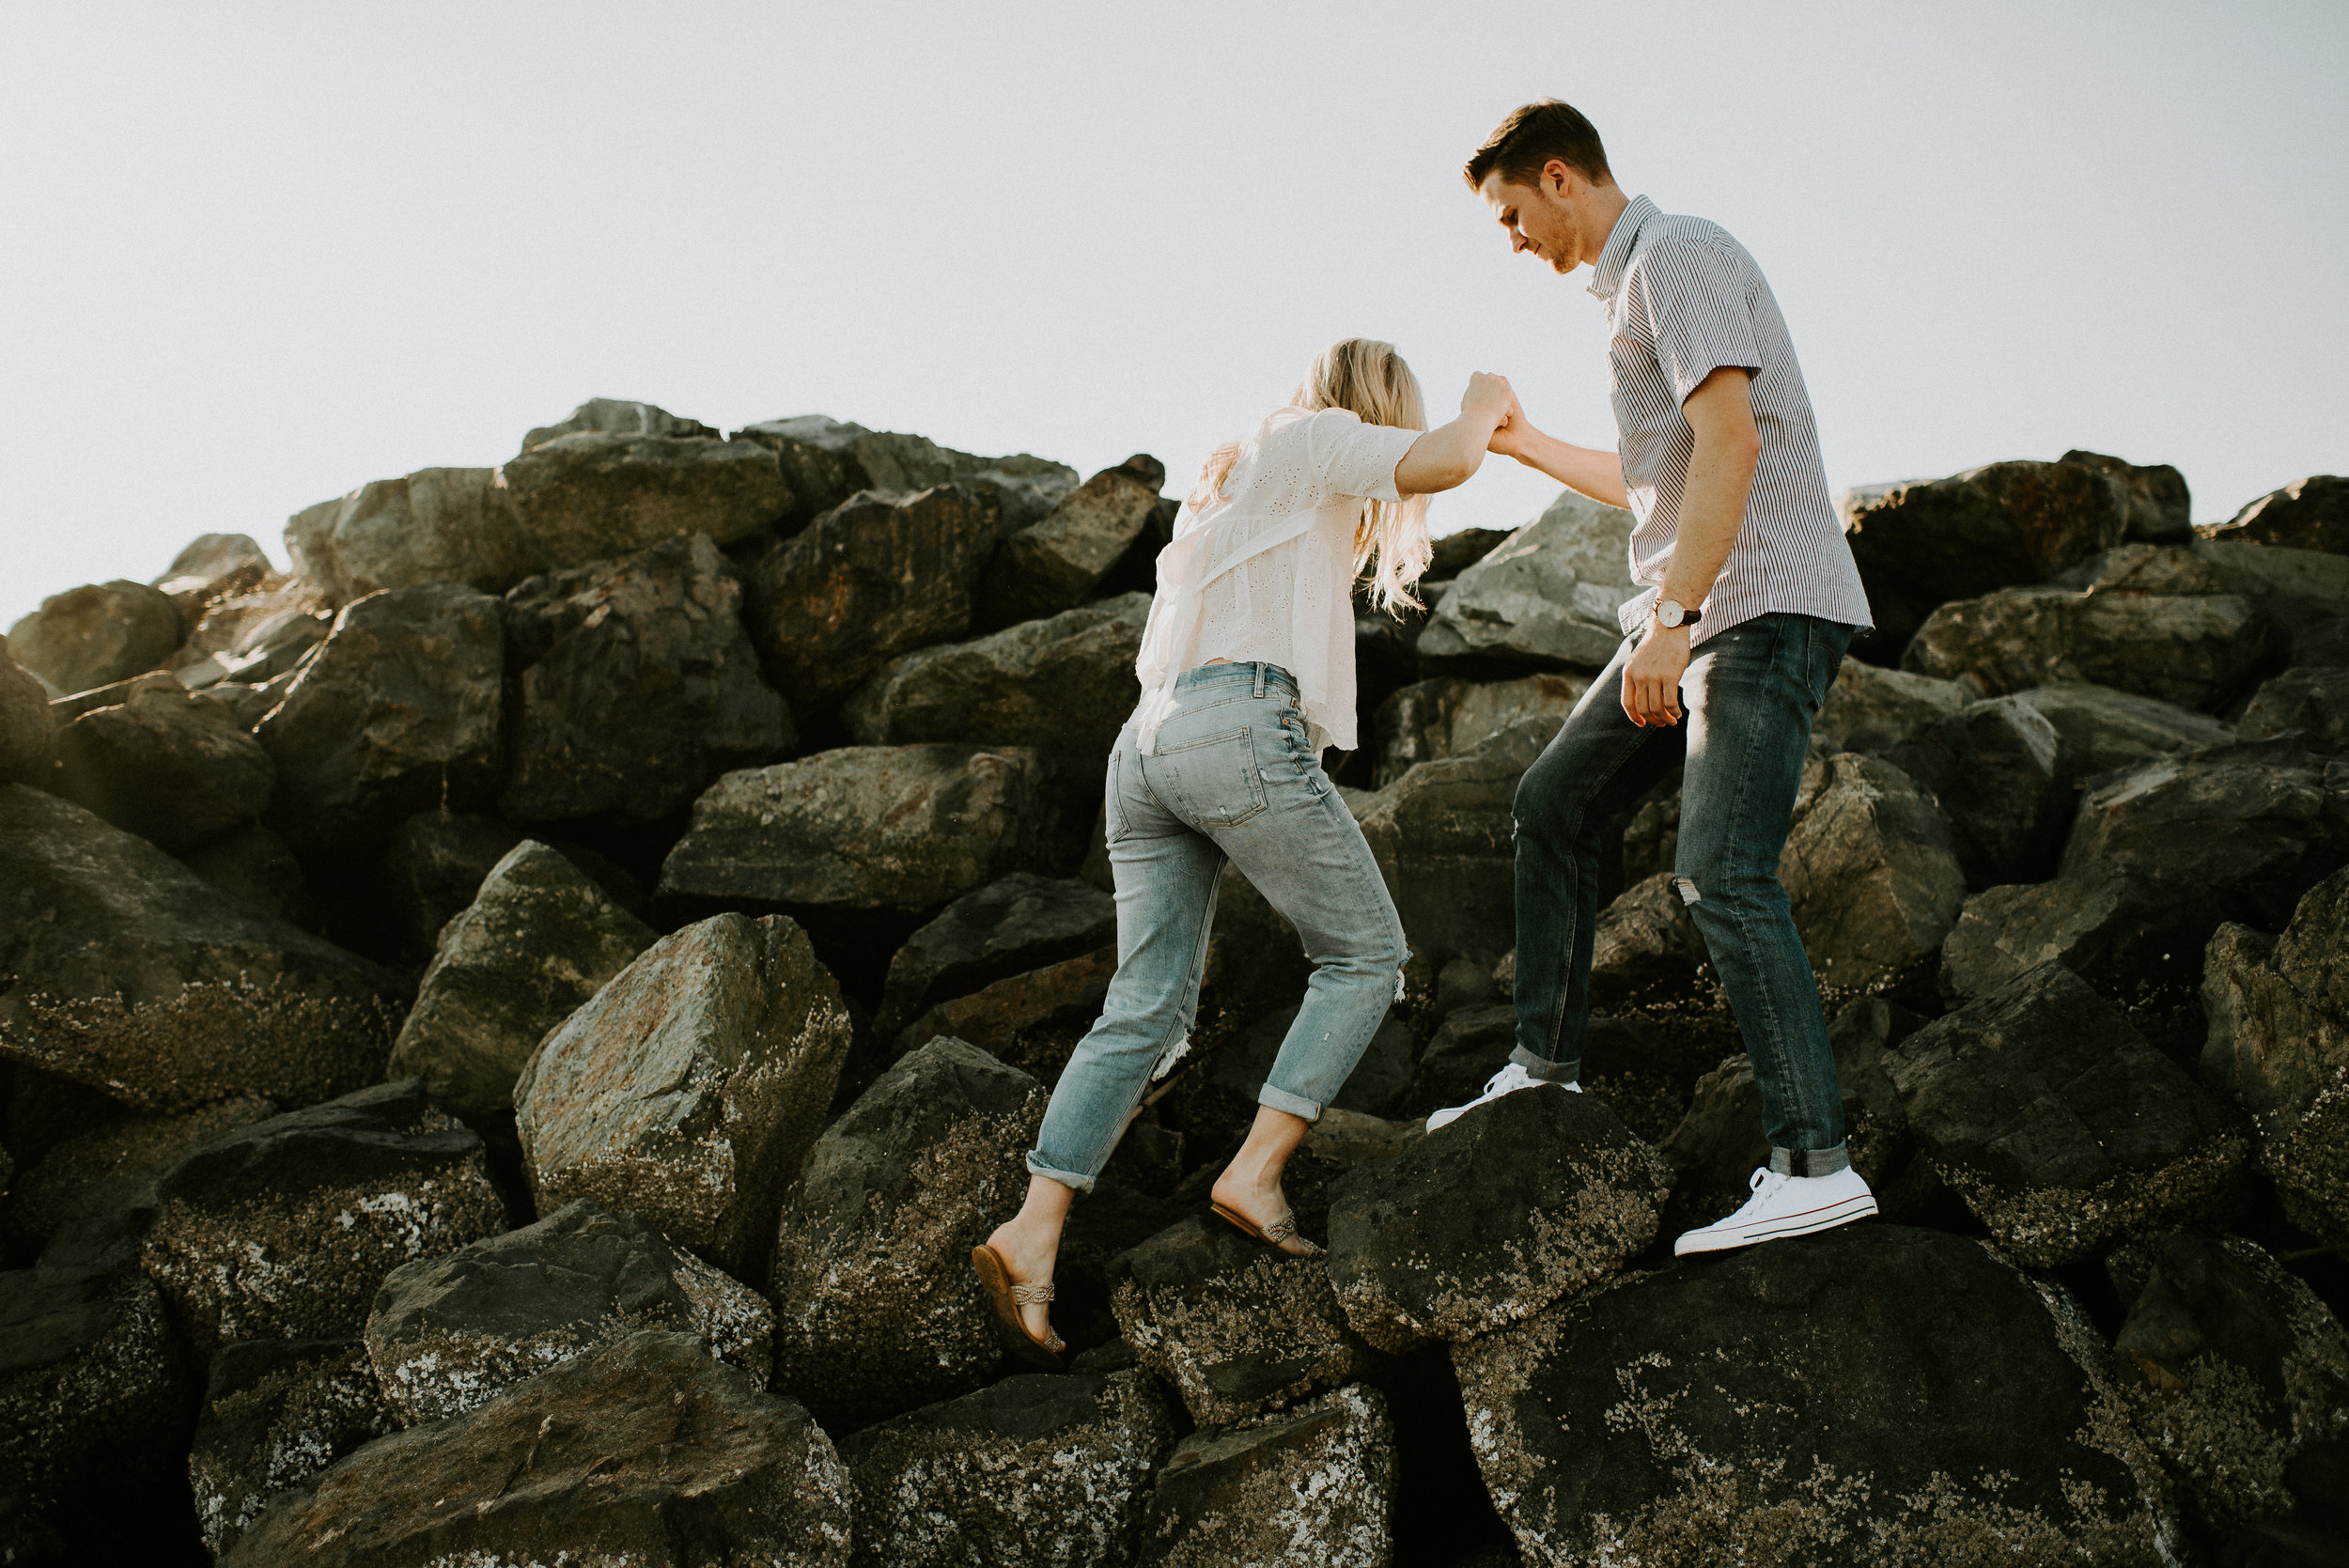 Hannah + Calvin Engagement Session - Kamra Fuller Photography - Edmonds, WA Ferry to Kingston, WA - Seattle Wedding Photographer